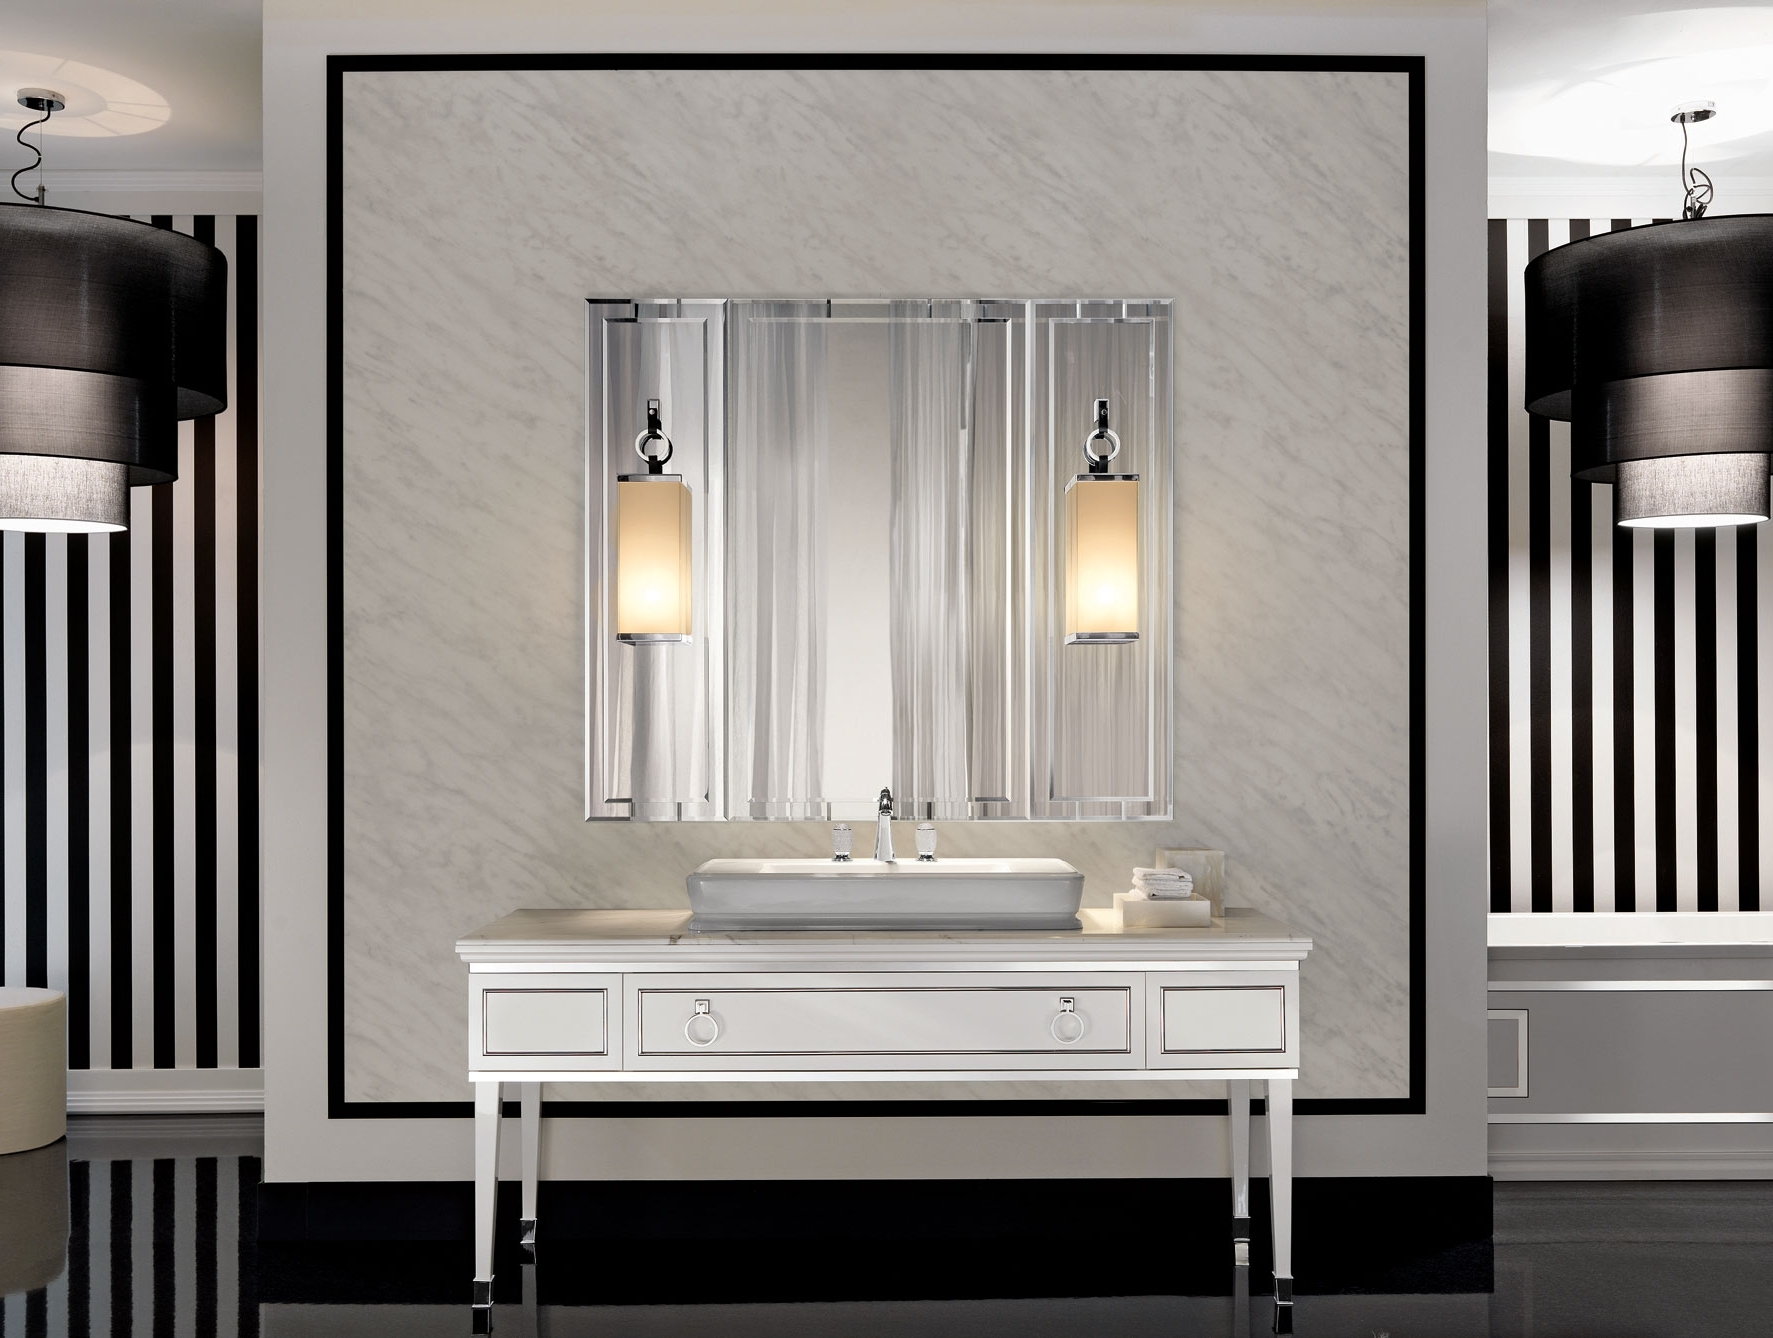 Well Liked Lutetia L3 Luxury Art Deco Italian Bathroom Furniture In White Lacquer Inside Italian Wall Art For Bathroom (View 15 of 15)